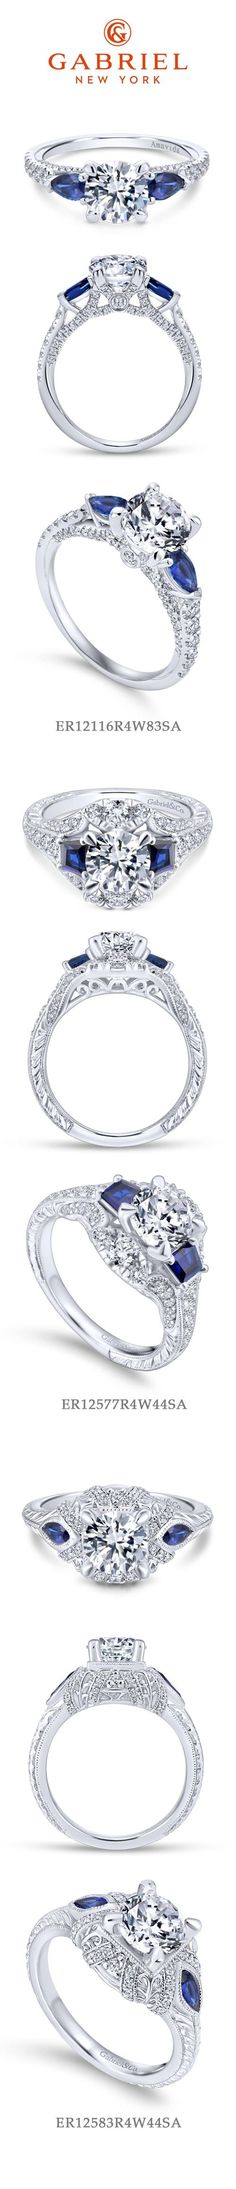 Gabriel NY - Preferred Fine Jewelry and Bridal Brand. Our Top 3 Sapphire Engagement Rings!  1) 18k White Gold Round 3 Stones 2) 14k White Gold Round 3 Stones 3) 14k White Gold Round 3 Stones halo